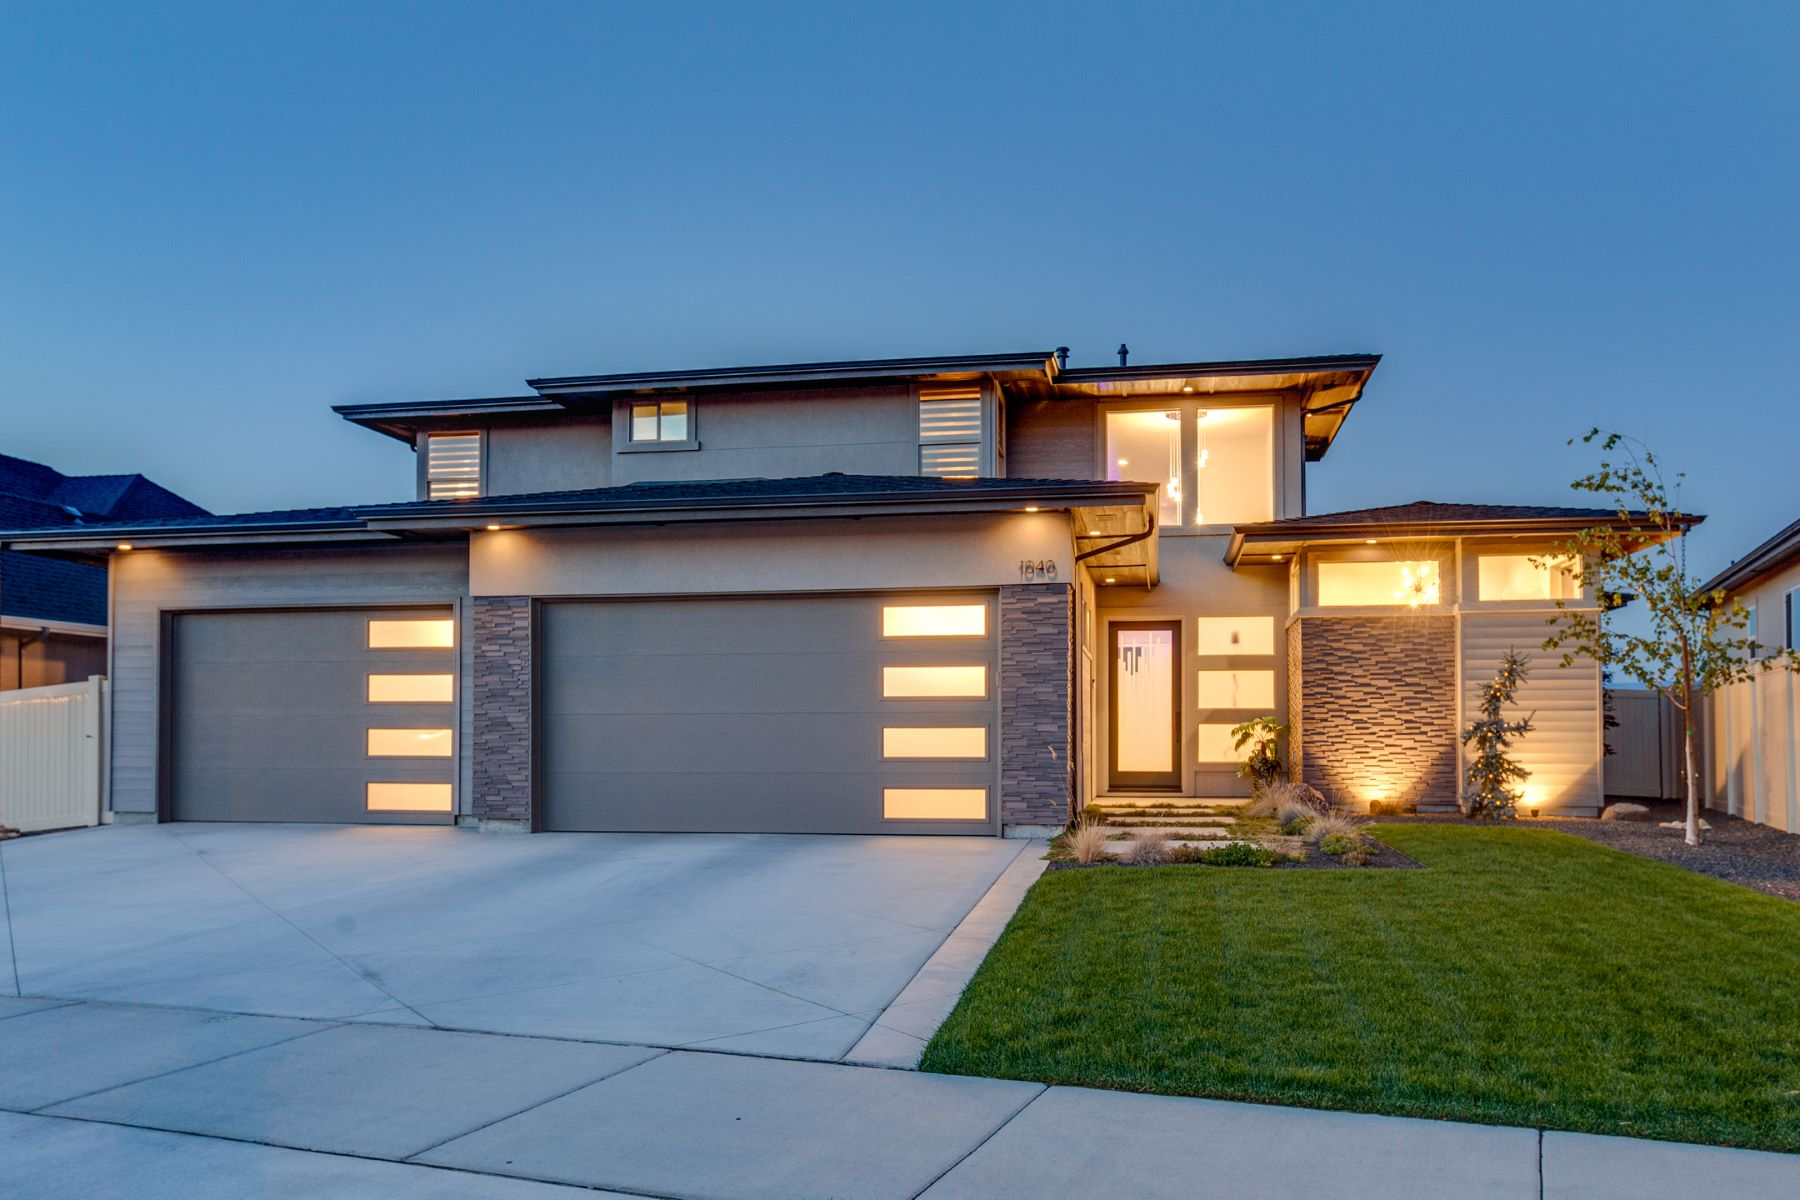 Single Family Homes for Active at 1040 Reflect Ridge Dr. Meridian, Idaho 83642 United States